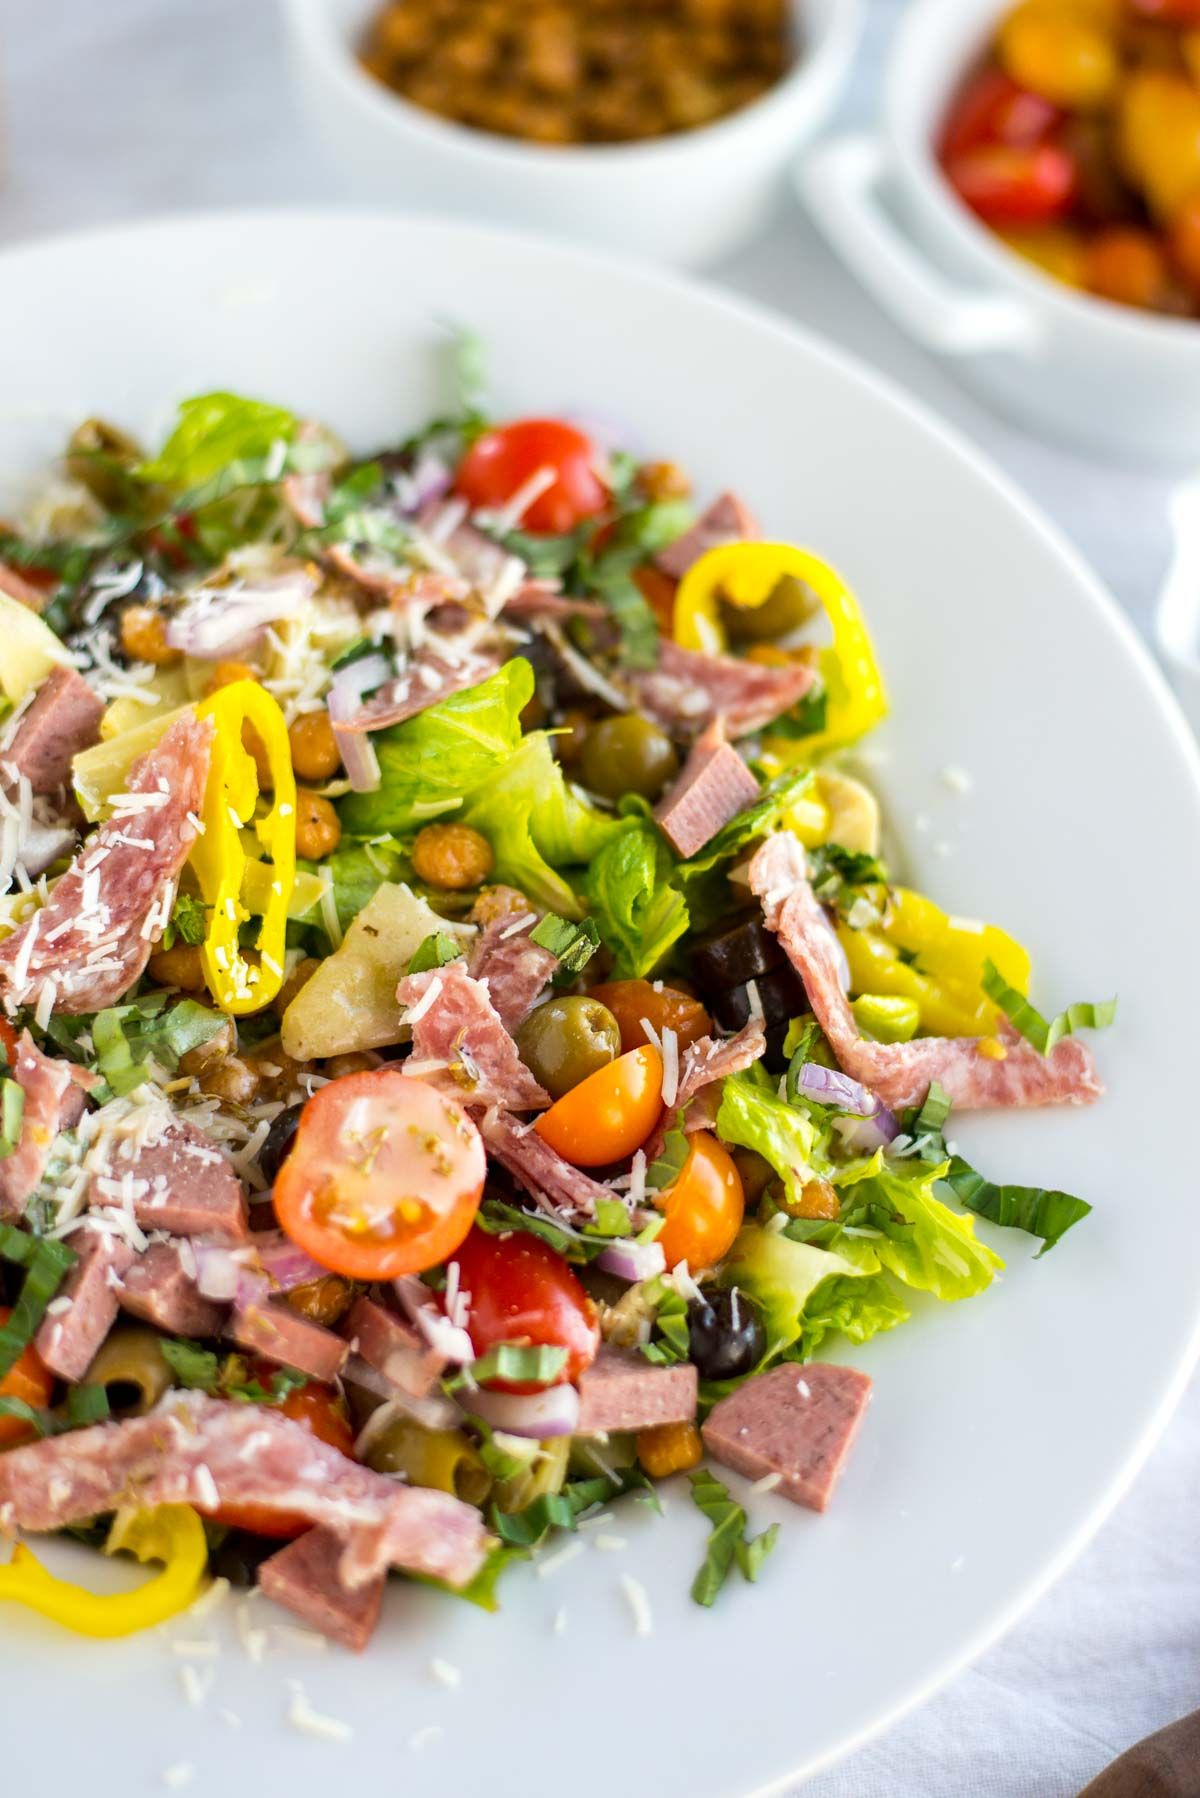 Looking For An Easy And Clean Weeknight Dinner Look No Further Than This Easy Family Friendly Itali Italian Chopped Salad Healthy Salad Recipes Chopped Salad